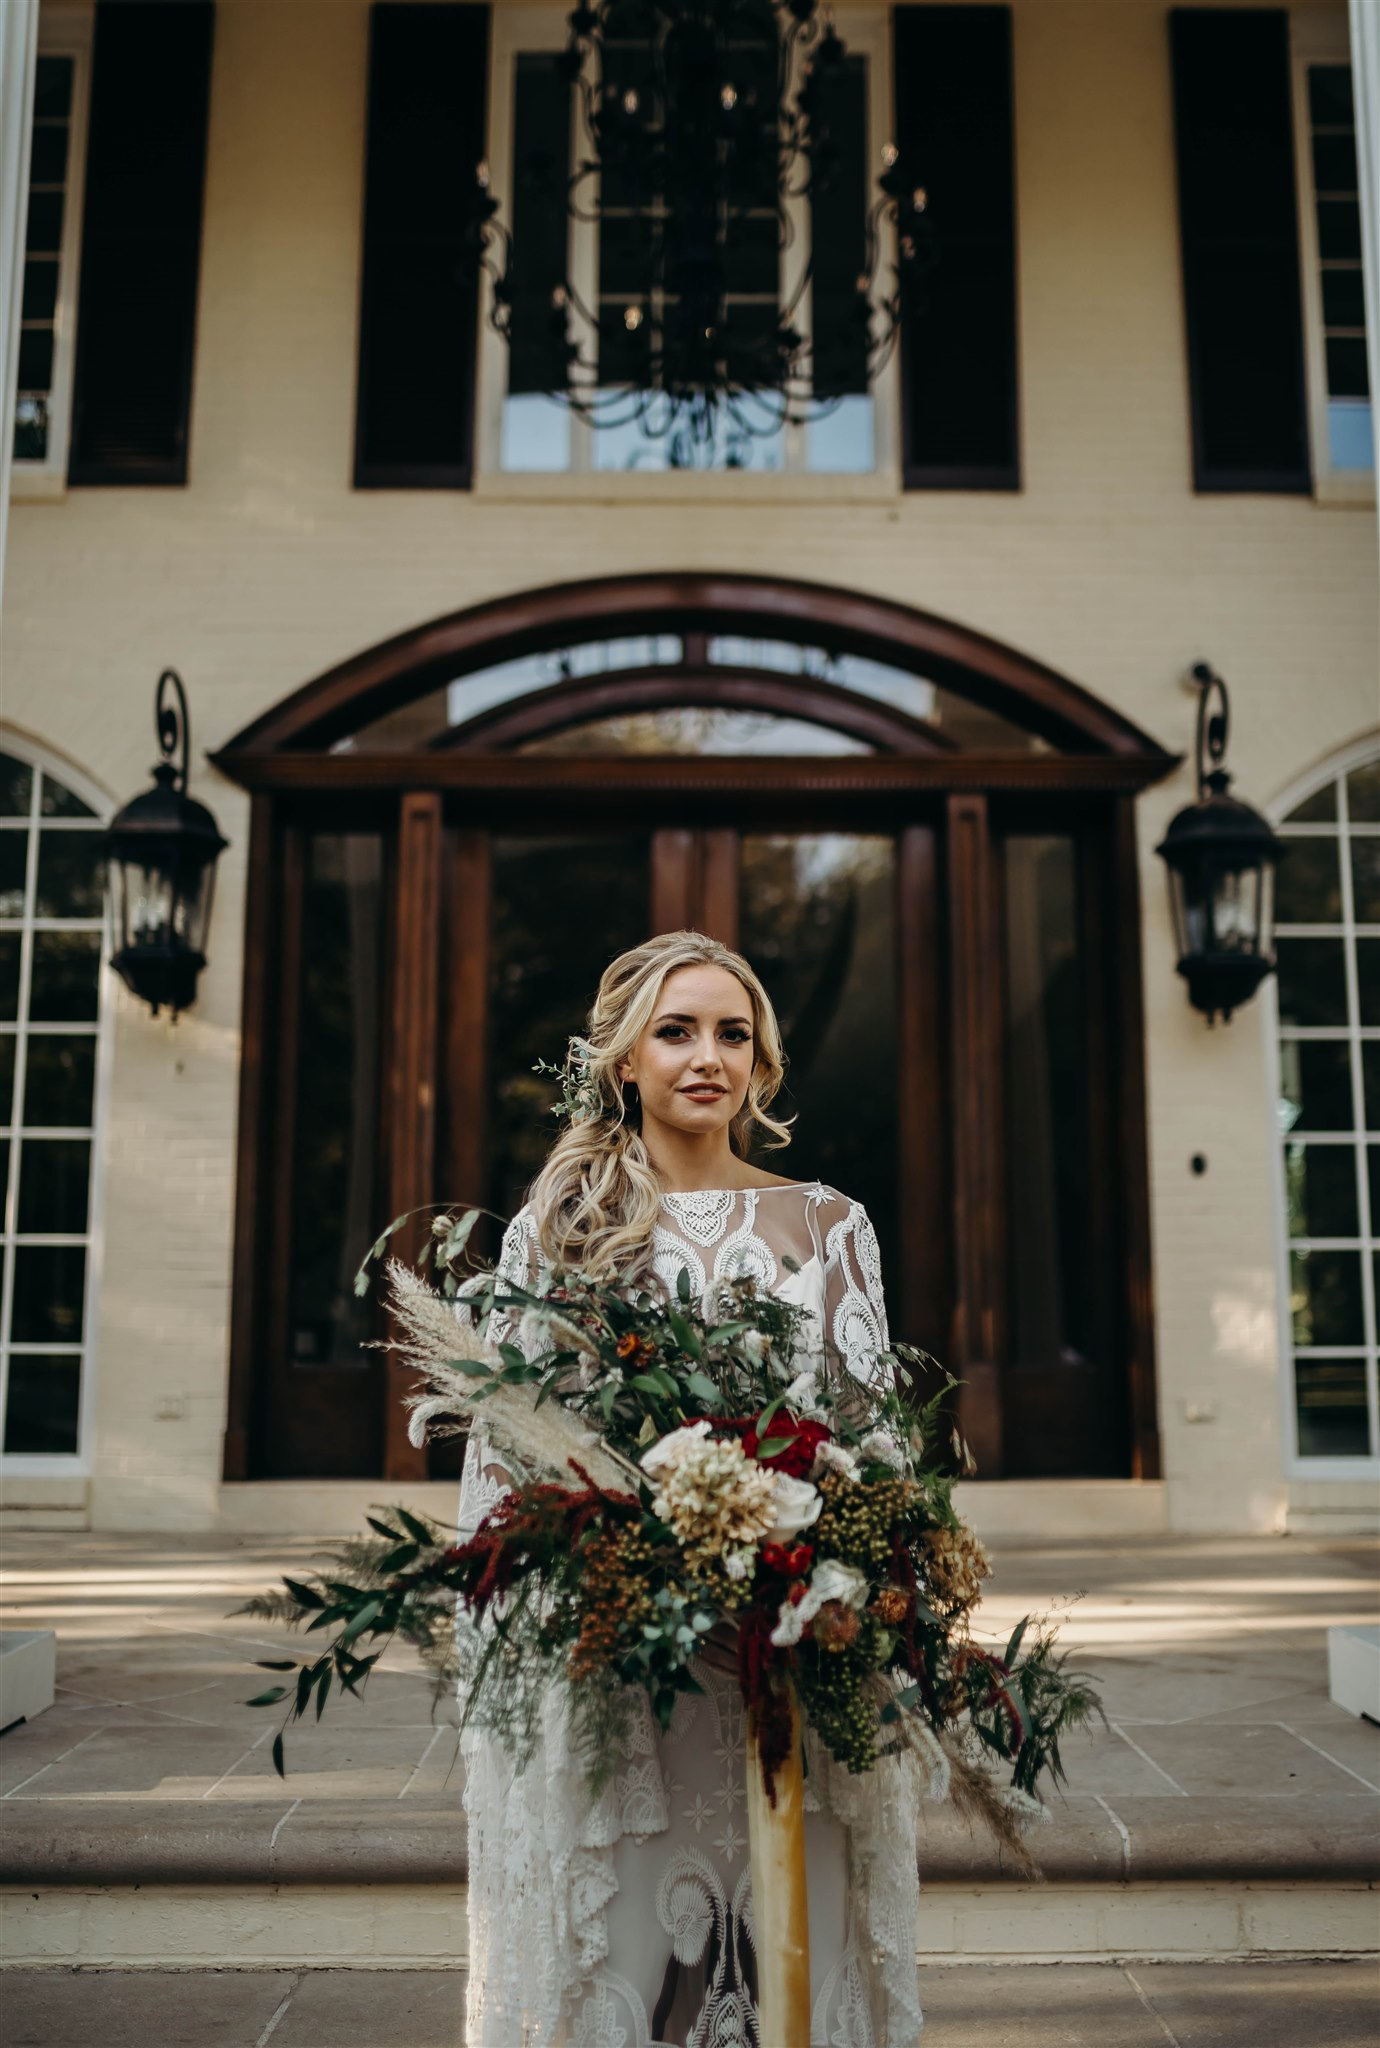 Bridal Bouquet for Boho Winter Wedding featured on Nashville Bride Guide